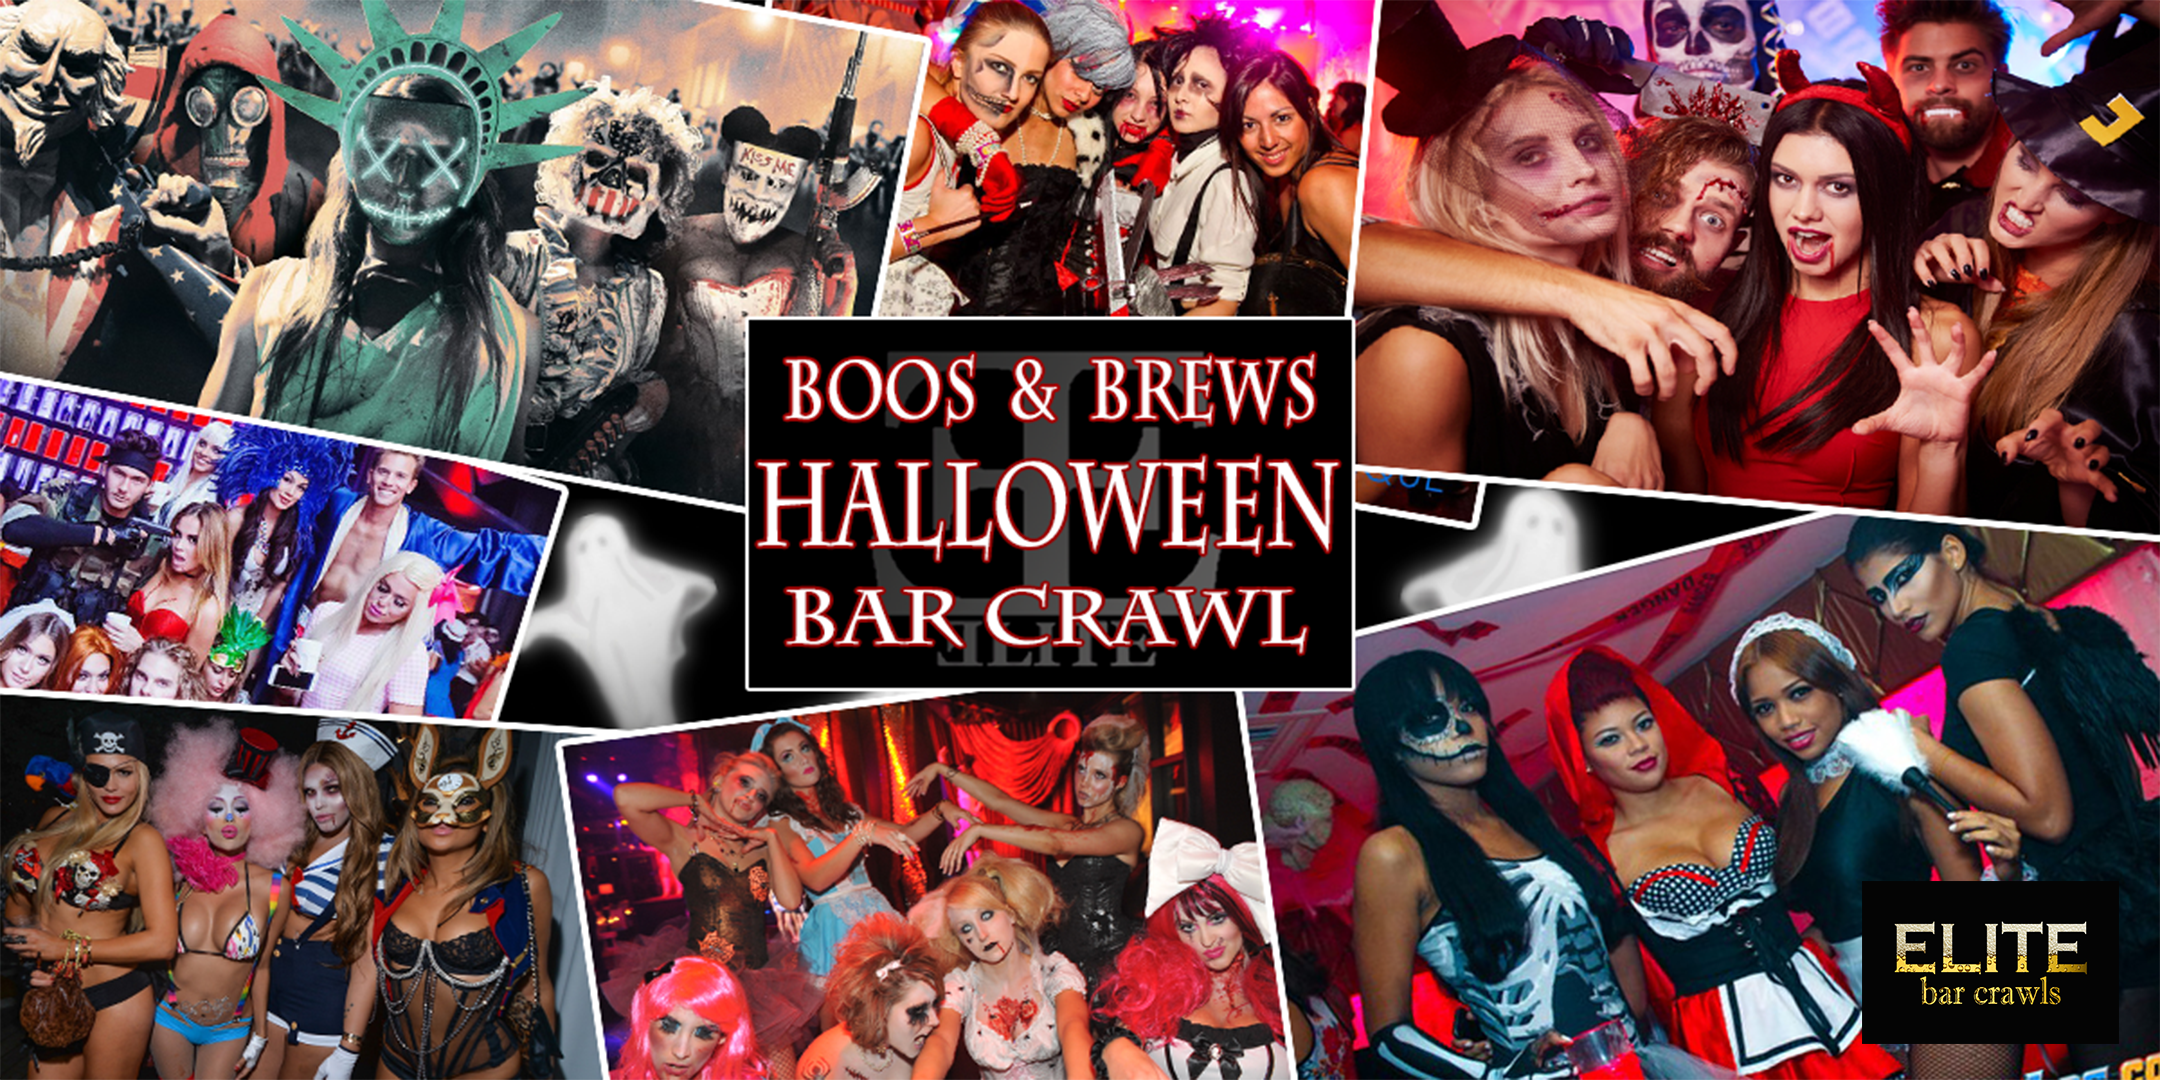 Halloween Bar Crawl -New York, NY